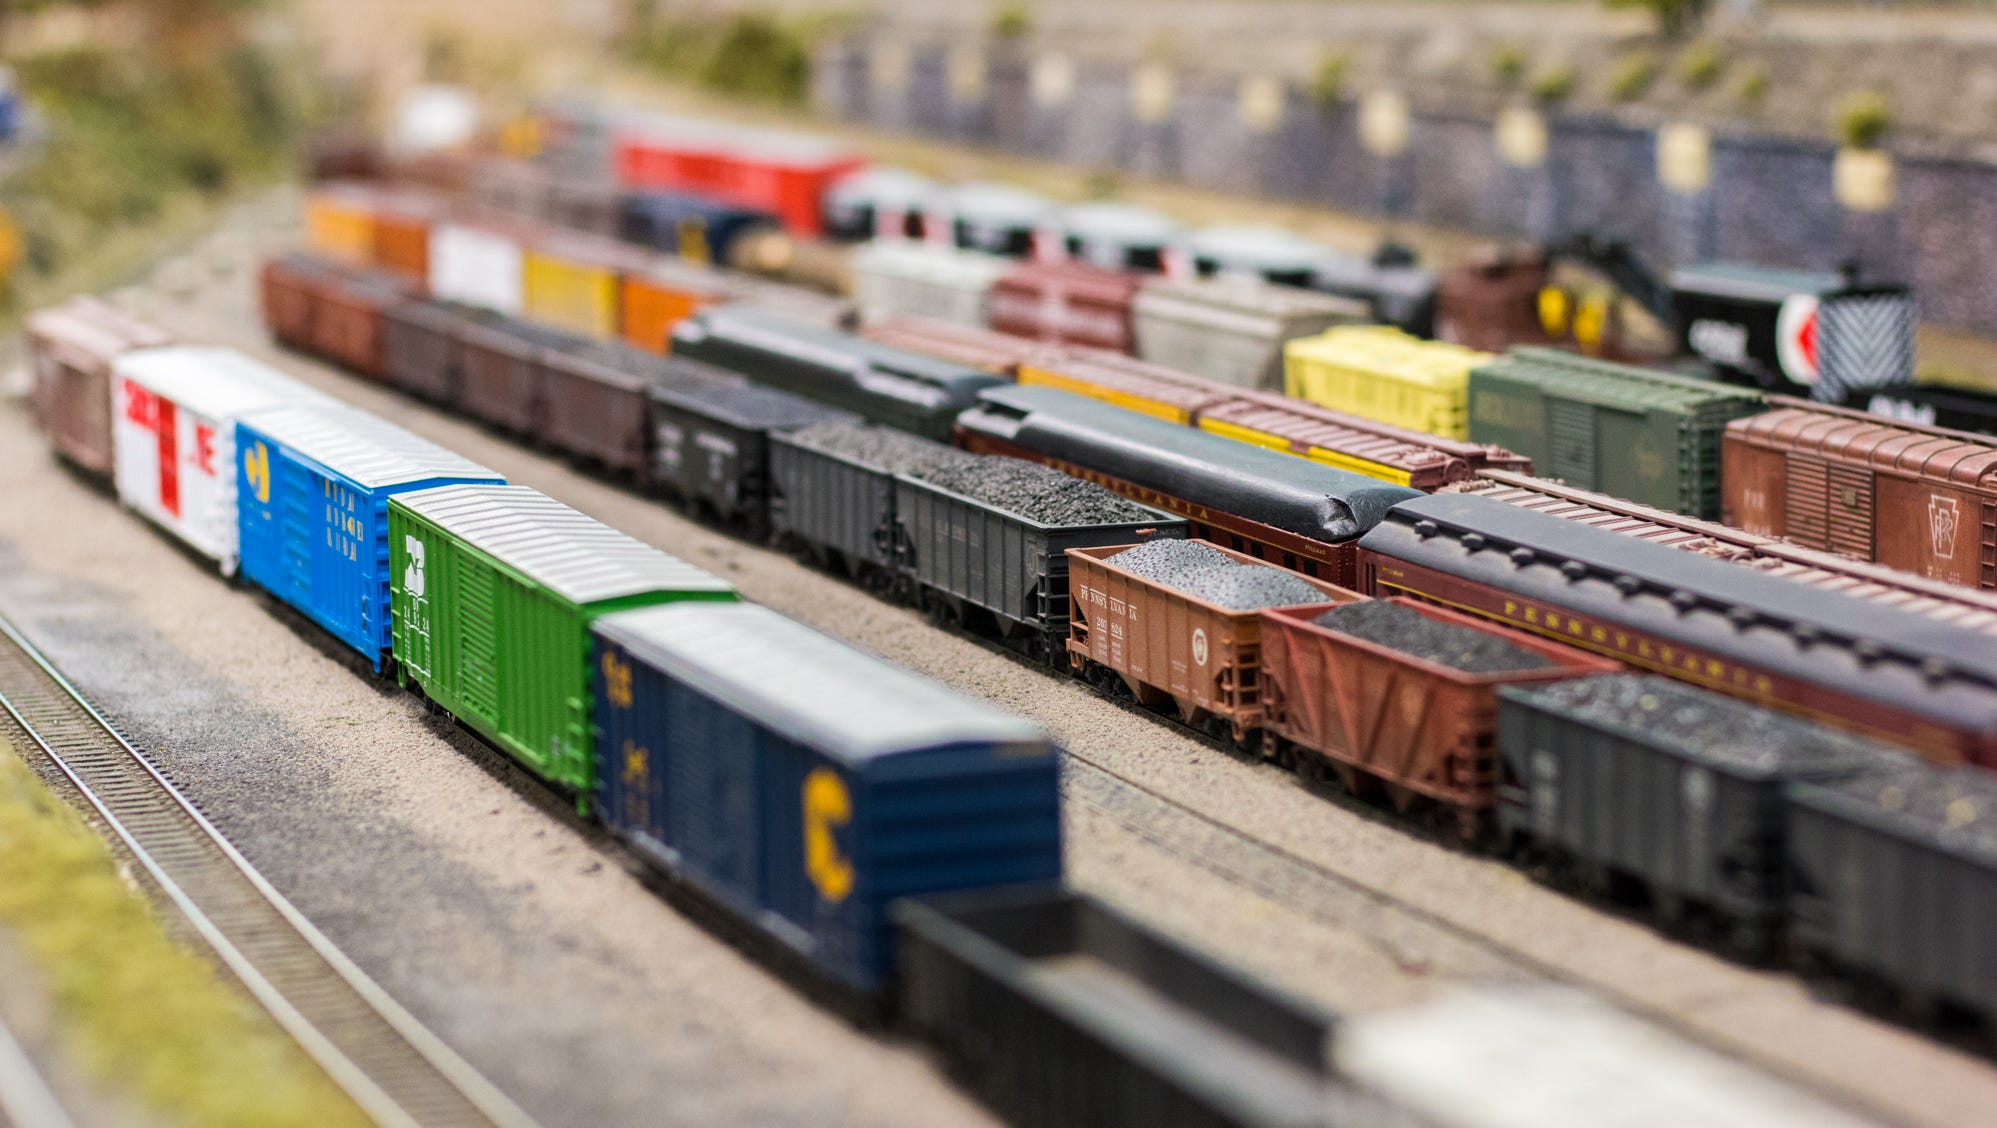 York County Has One Of The Oldest Model Railroads In America